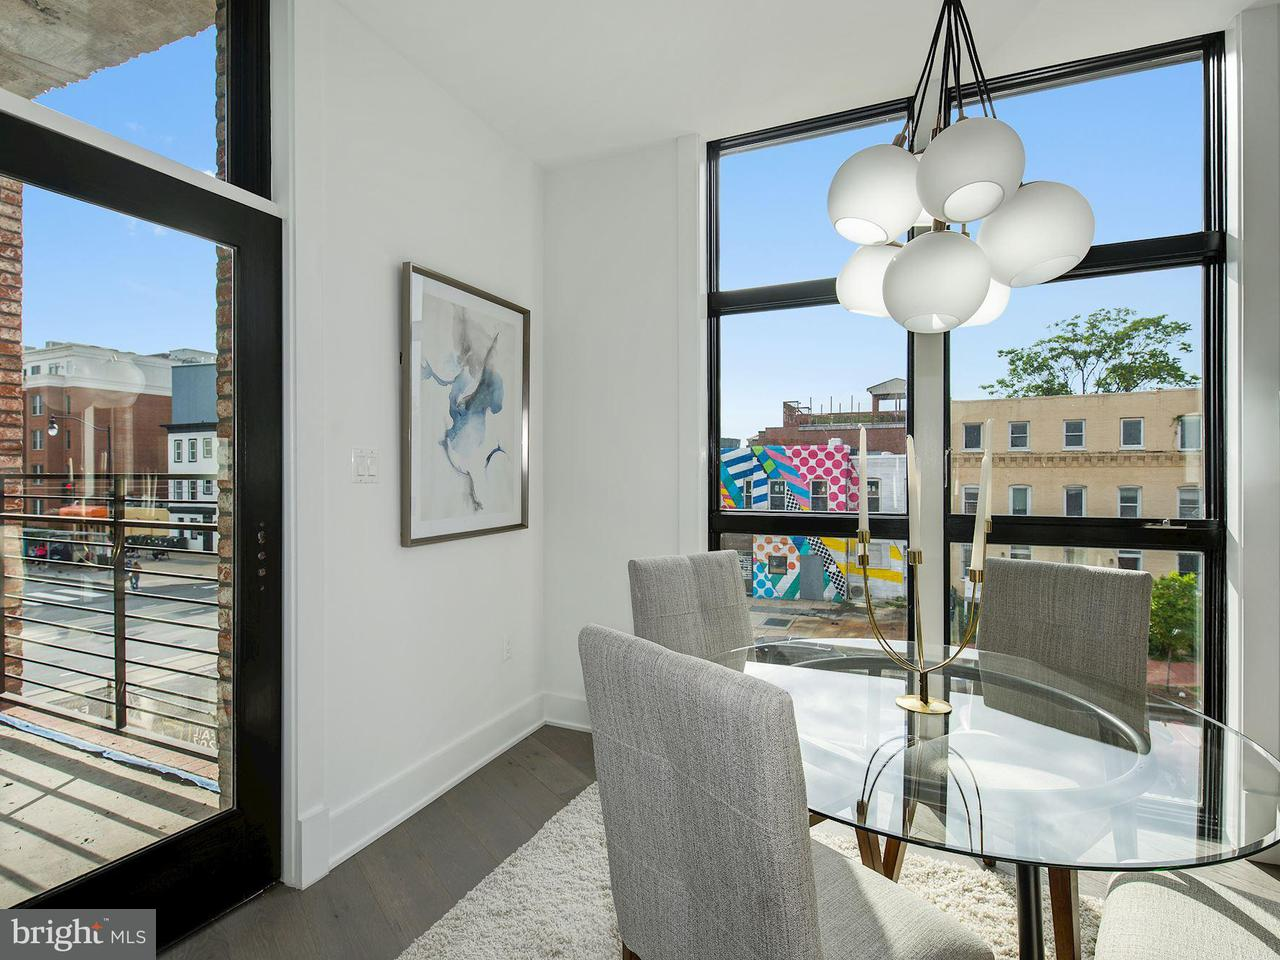 Additional photo for property listing at 1402 H ST NE #305 1402 H ST NE #305 Washington, District Of Columbia 20002 United States